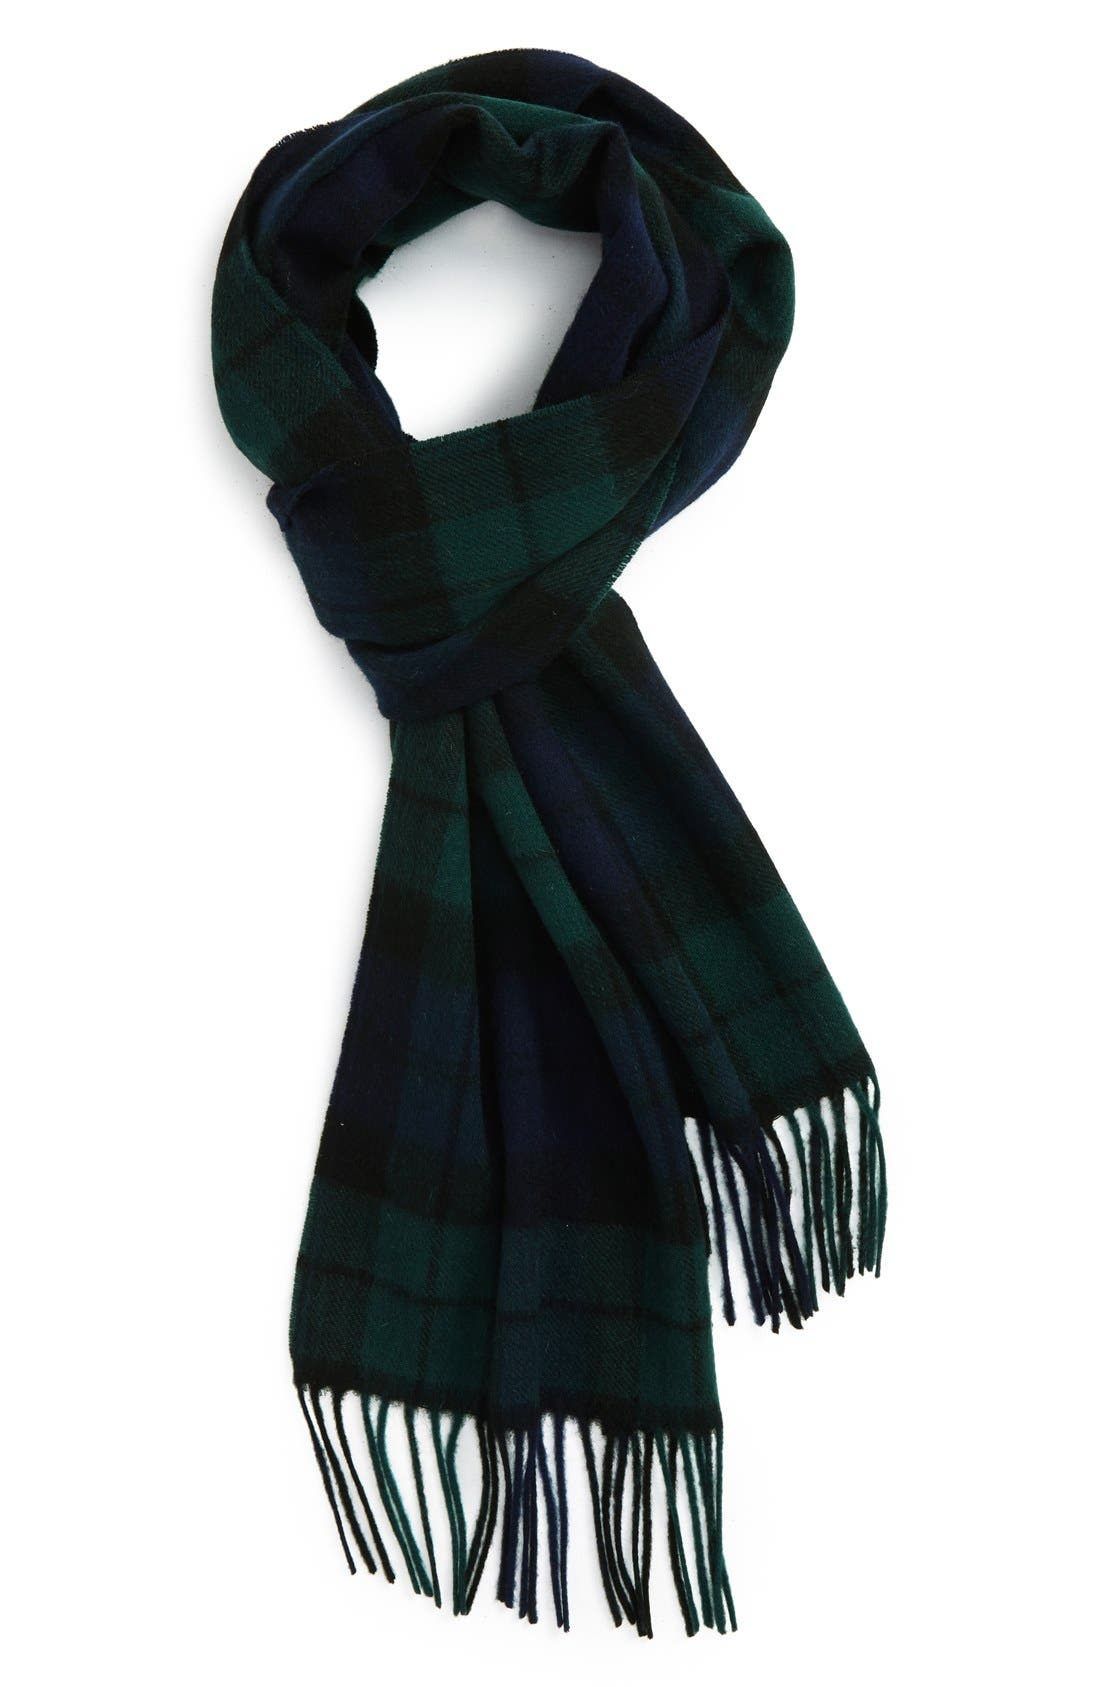 New Check Lambswool & Cashmere Scarf,                             Main thumbnail 1, color,                             BLACK WATCH